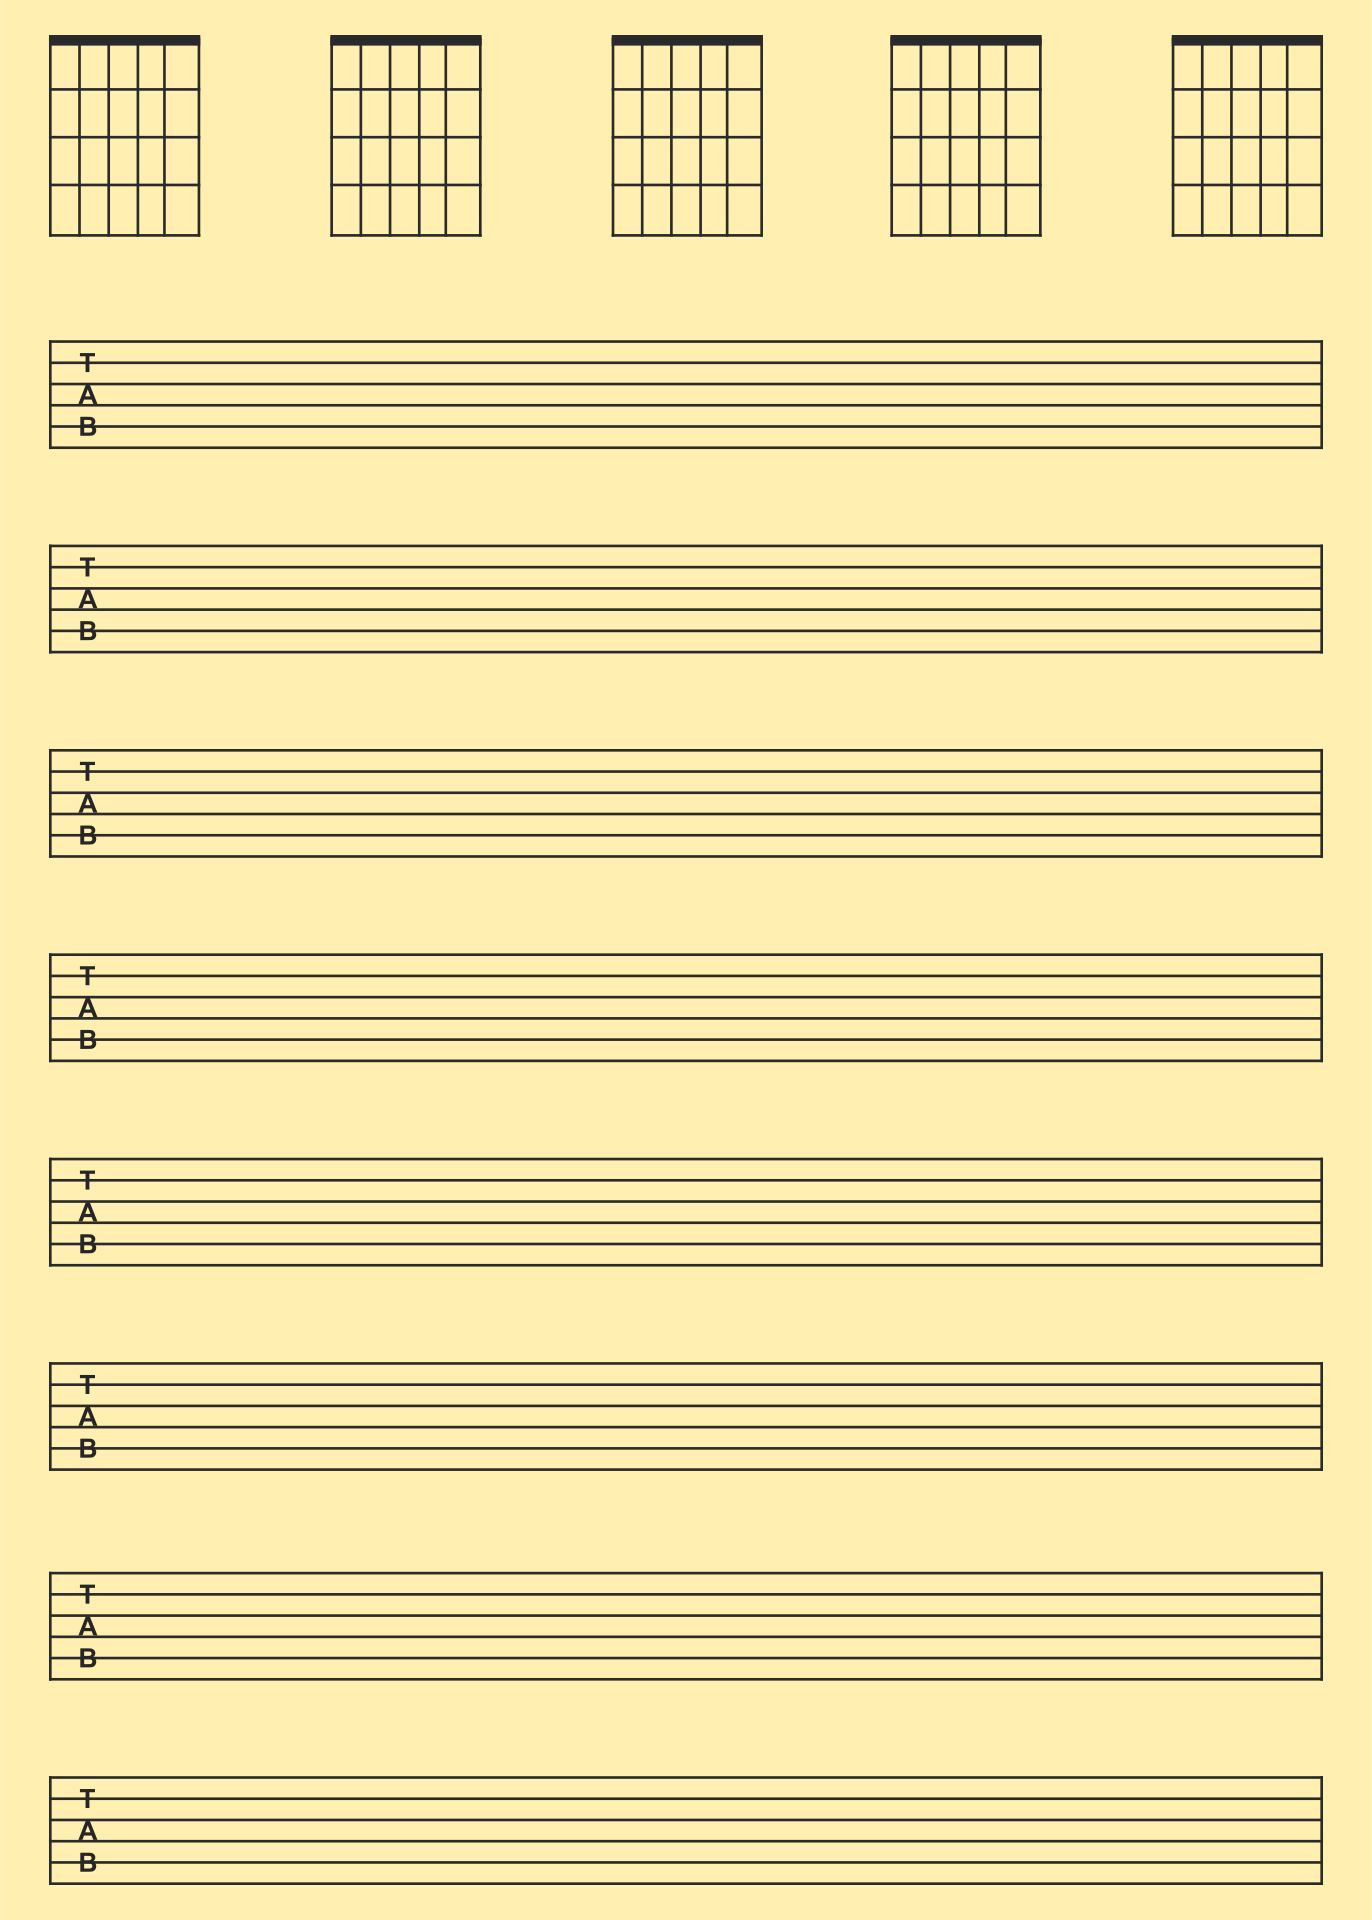 Blank Music Sheets For Guitar